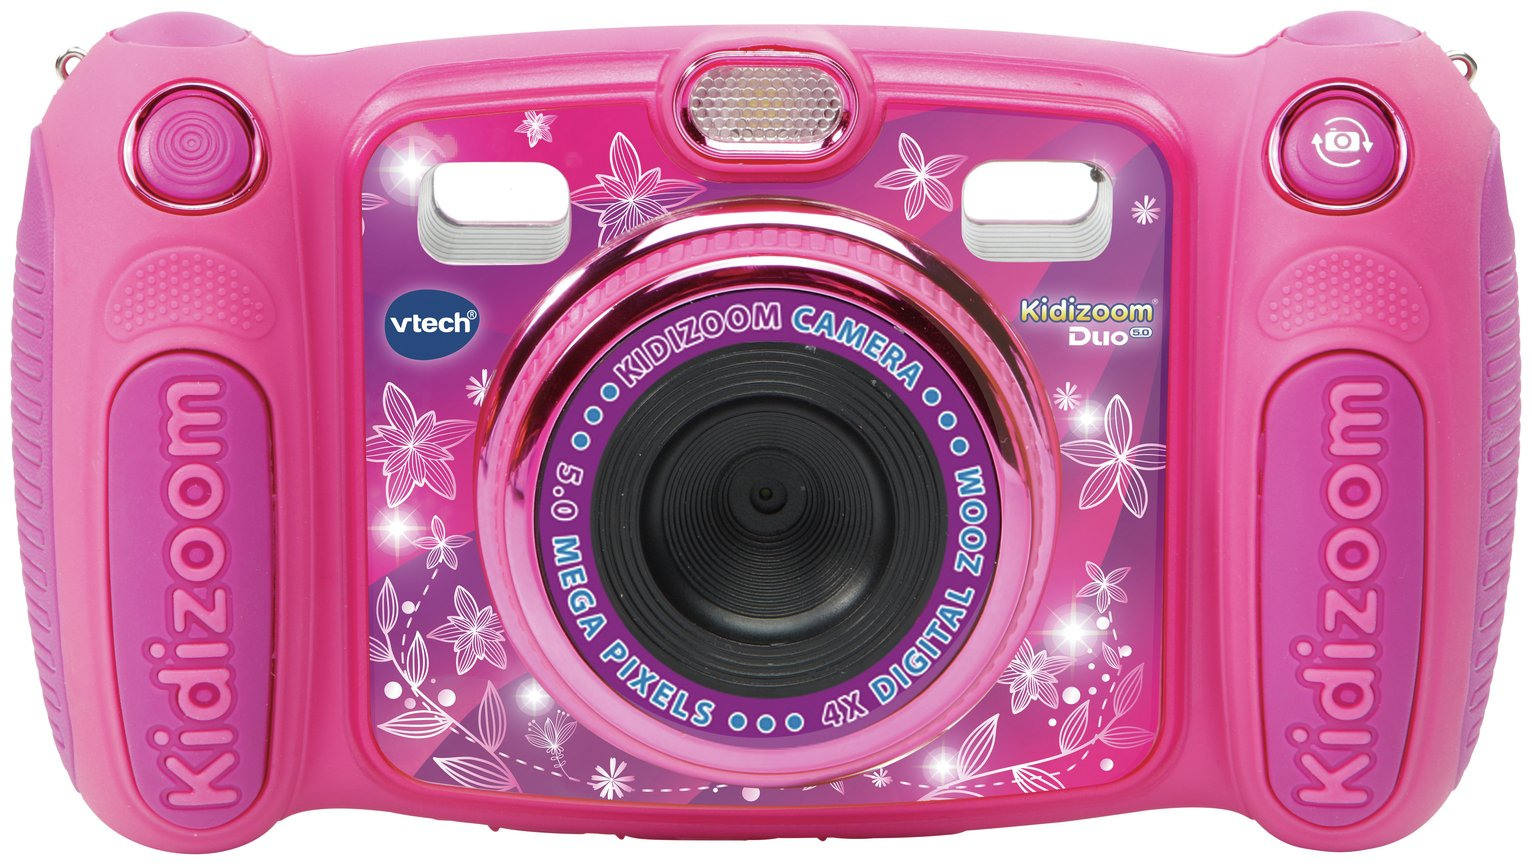 VTech Kidizoom 5MP Camera - Pink from VTech